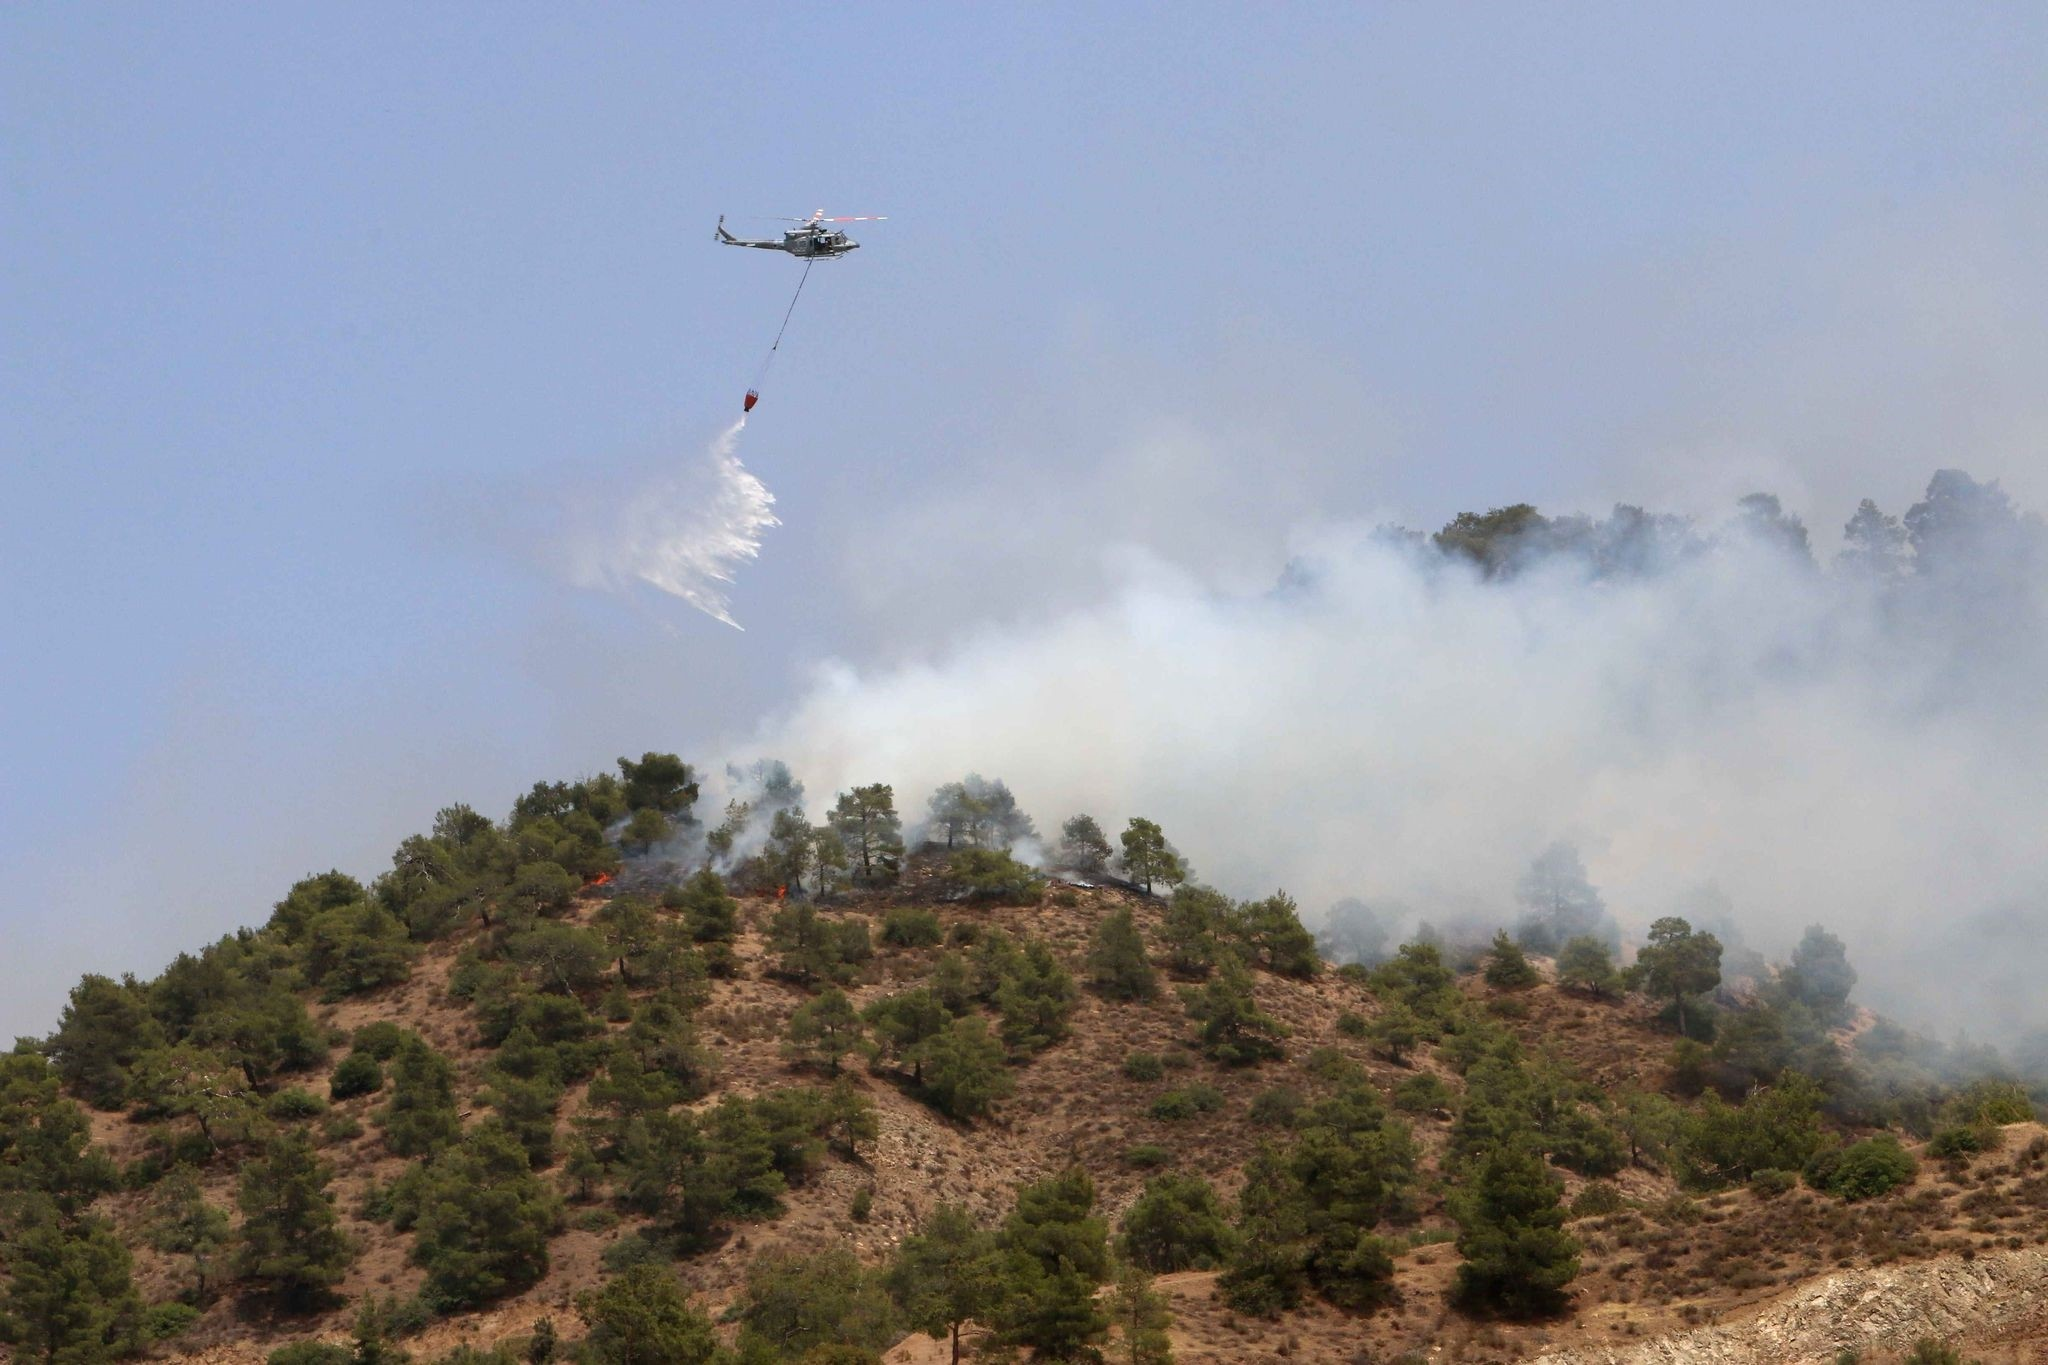 A helicopter drops water on a forest fire in the Cypriot village of Eyrixou in the Trodos mountain area on June 20, 2016. (AFP Photo)